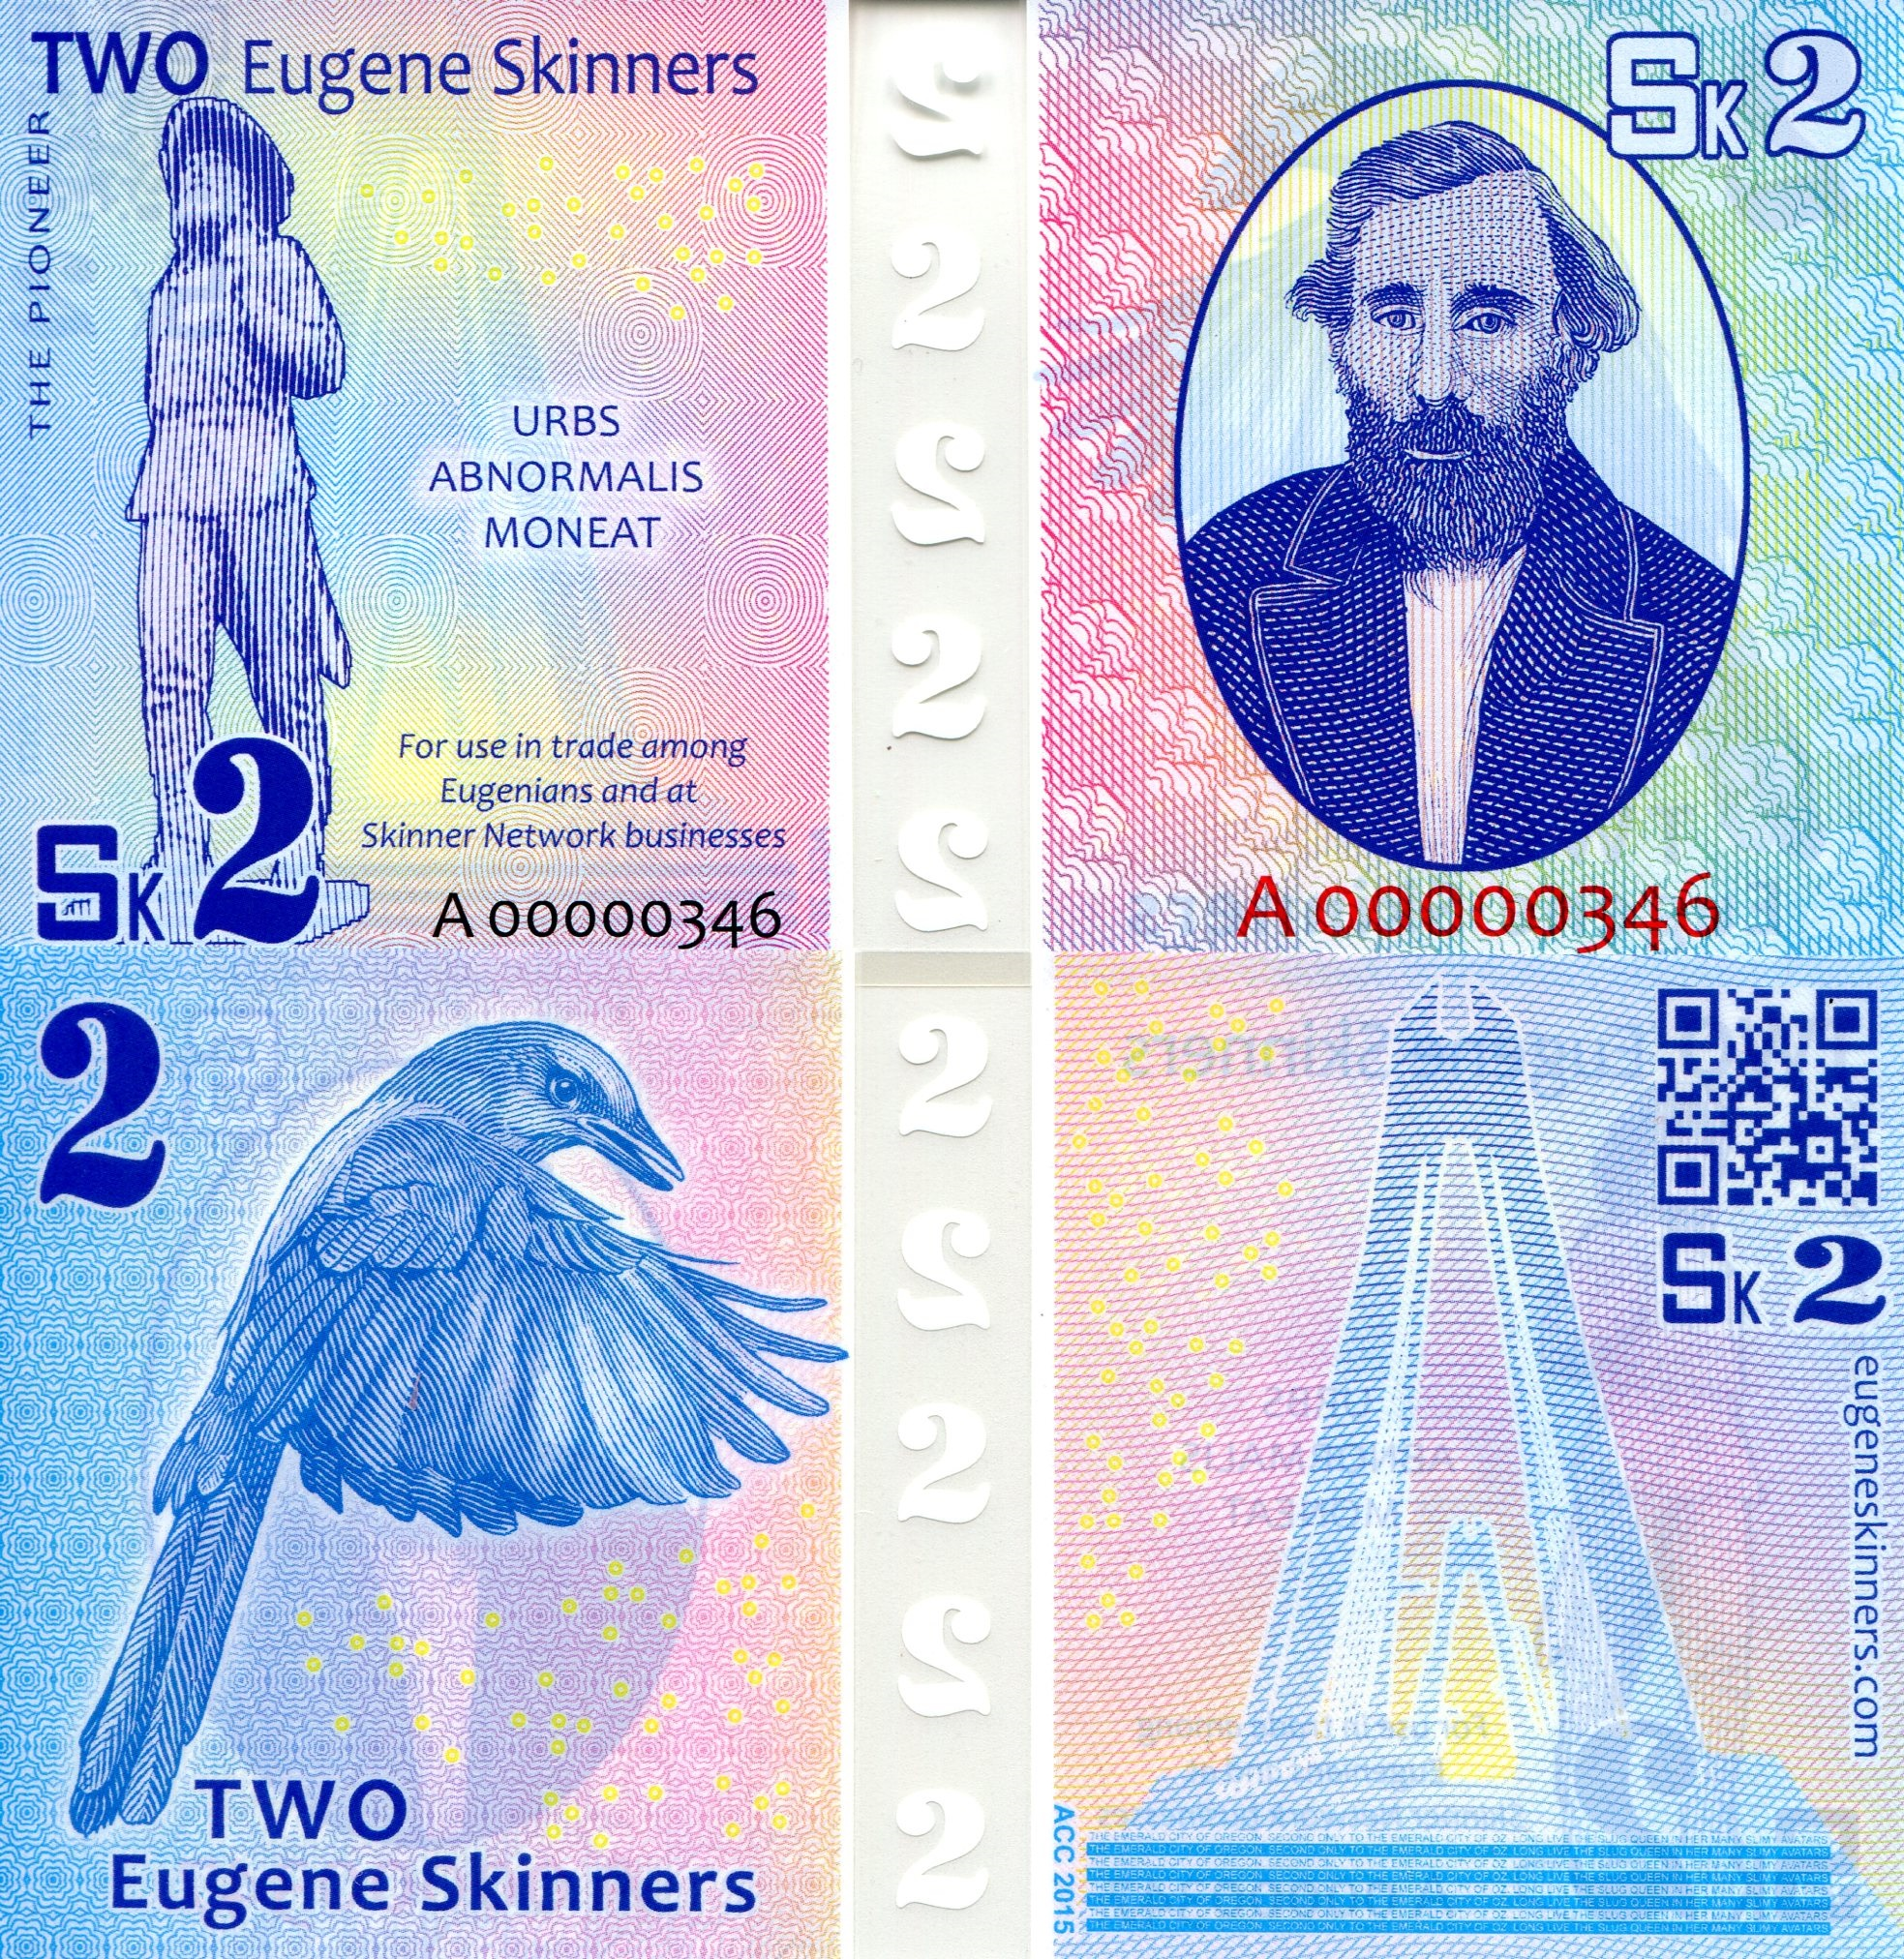 2 Eugene Skinners  UNC Banknote